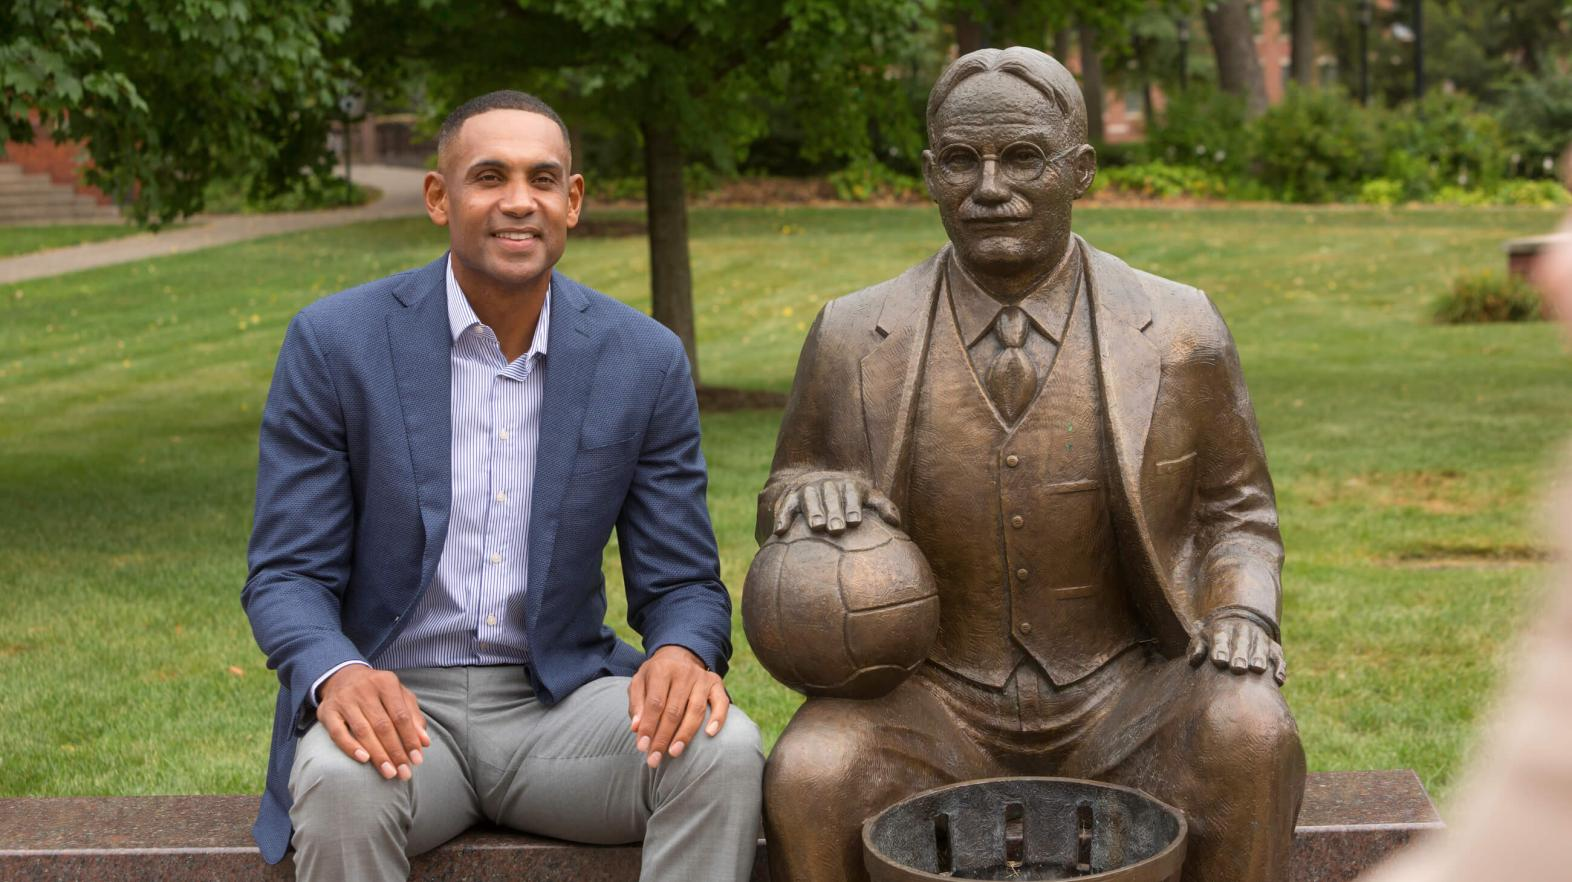 Grant Hill sits next to the James Naismith statue.